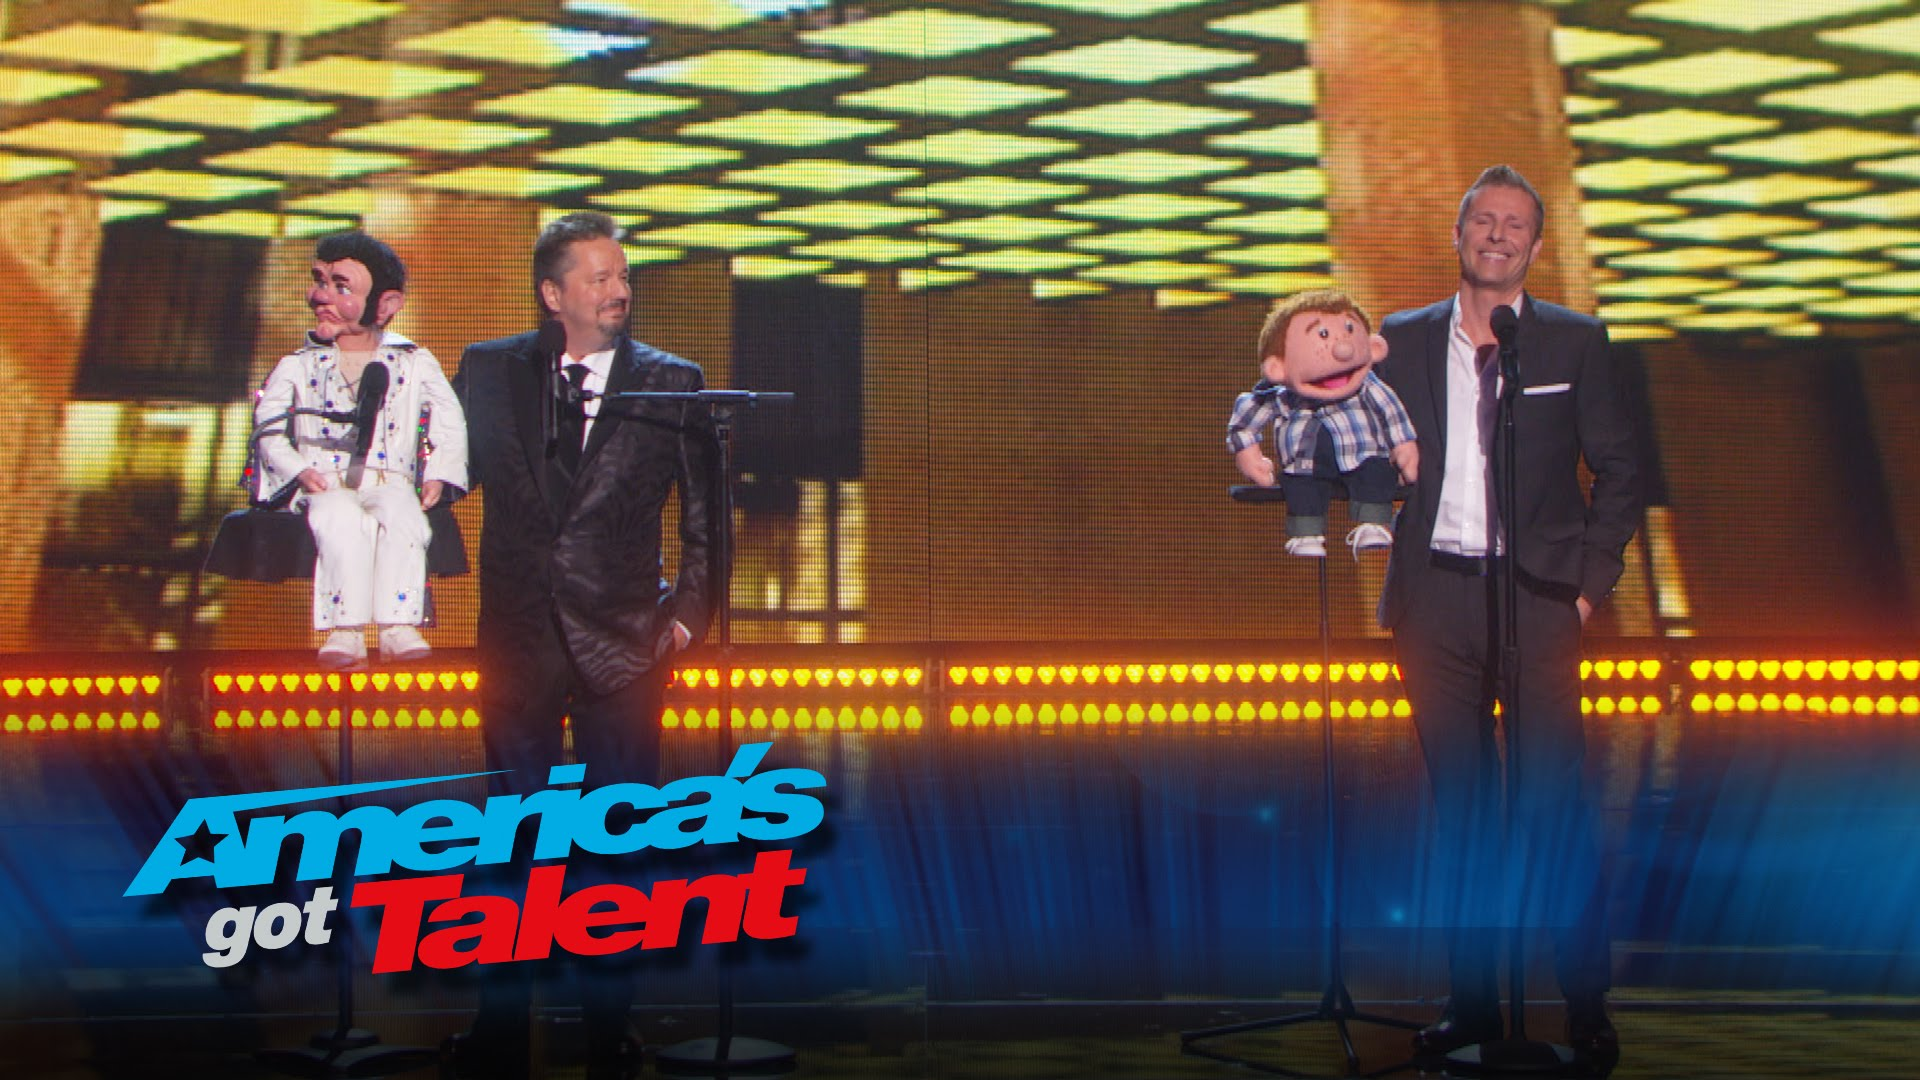 British ventriloquist Paul Zerdin wins Season 10 of America's Got Talent